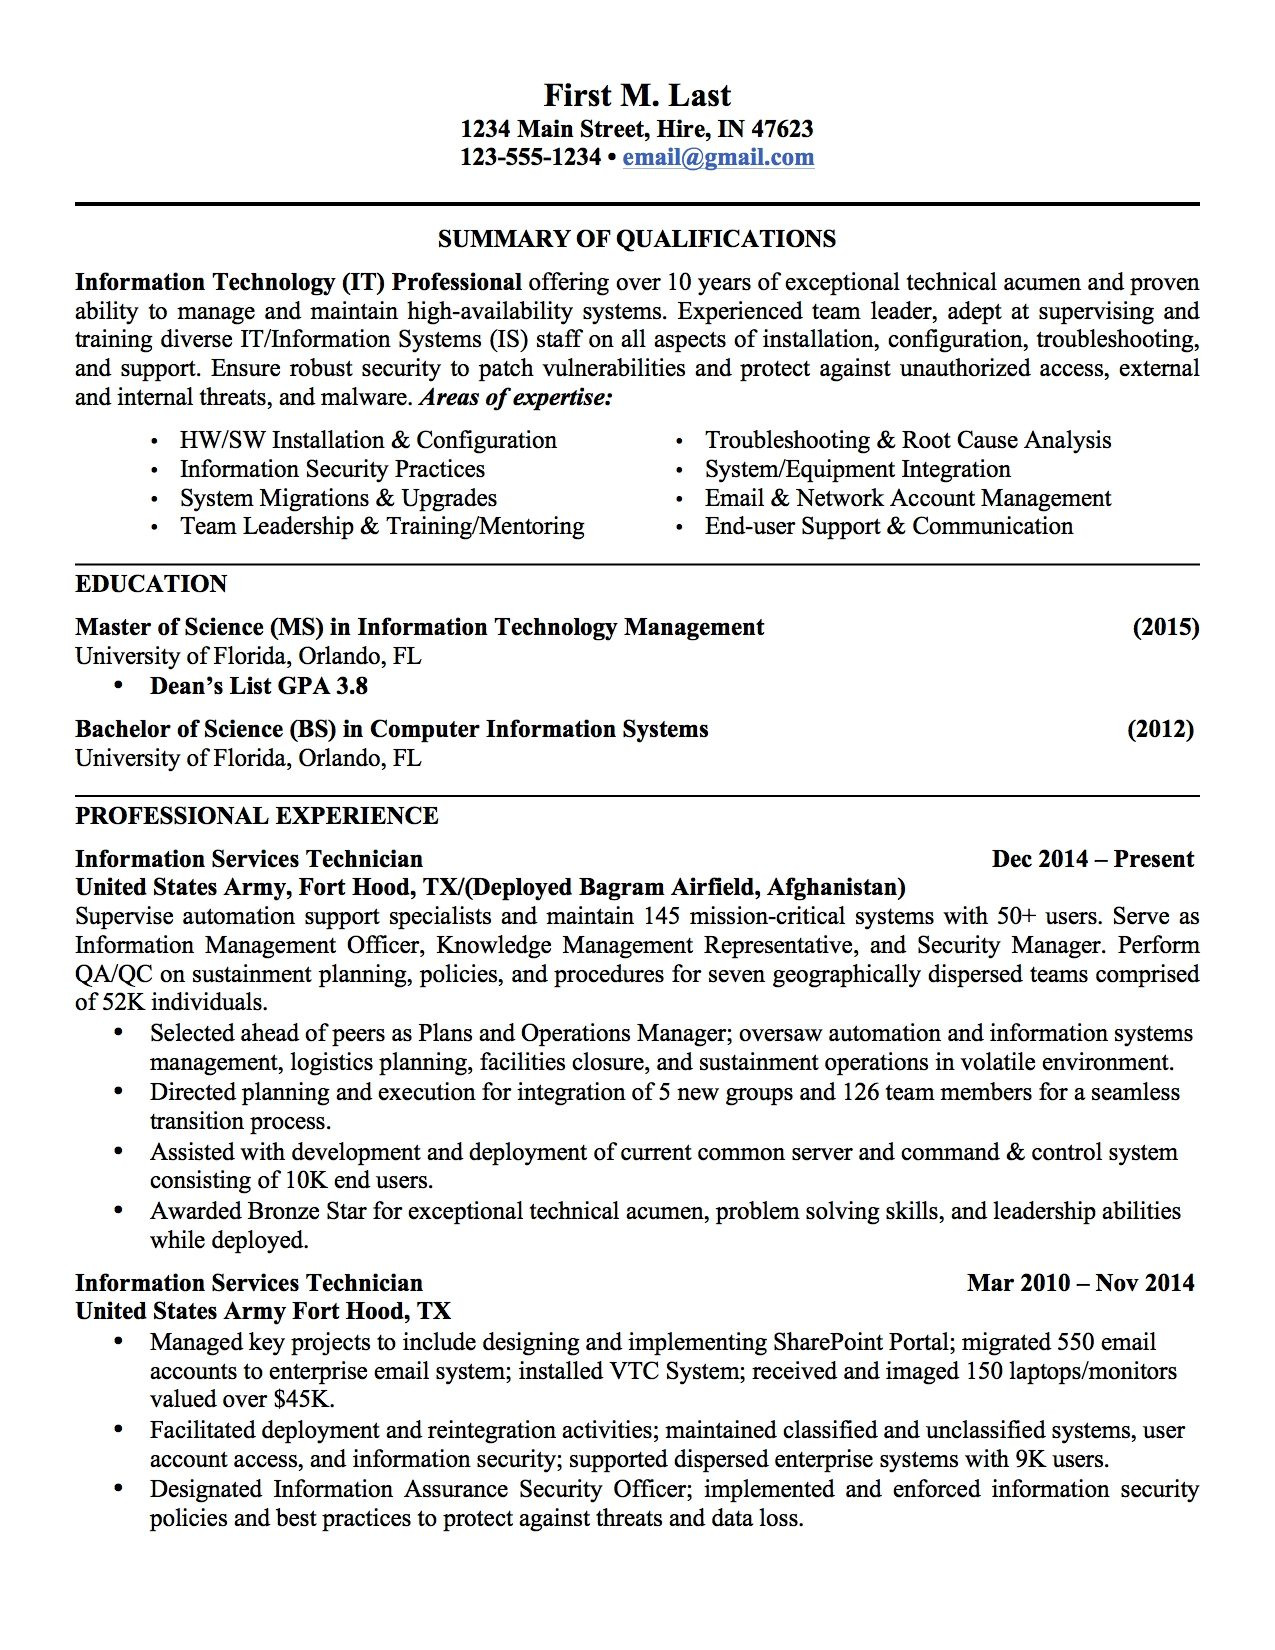 Military Experience On Resume